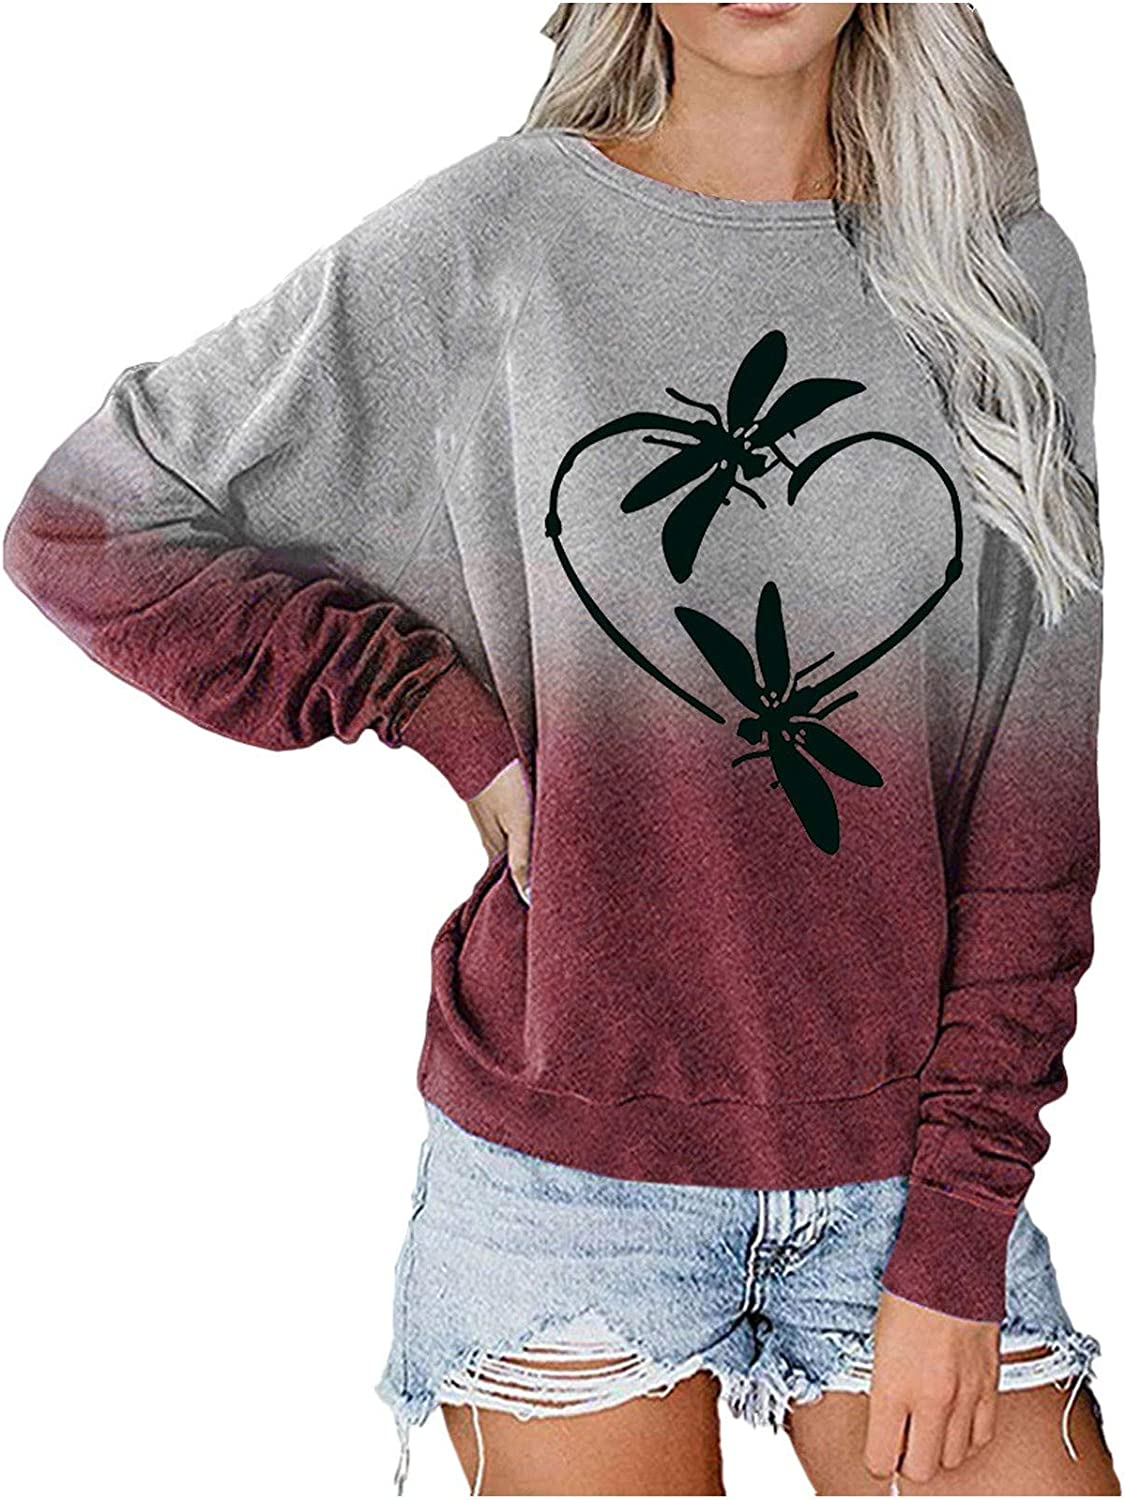 Womens Long Sleeve Tops,Women's Plus Size Casual Pullover Round Neck Long Sleeve Tie Dye Colorful Sweatshirt Shirt